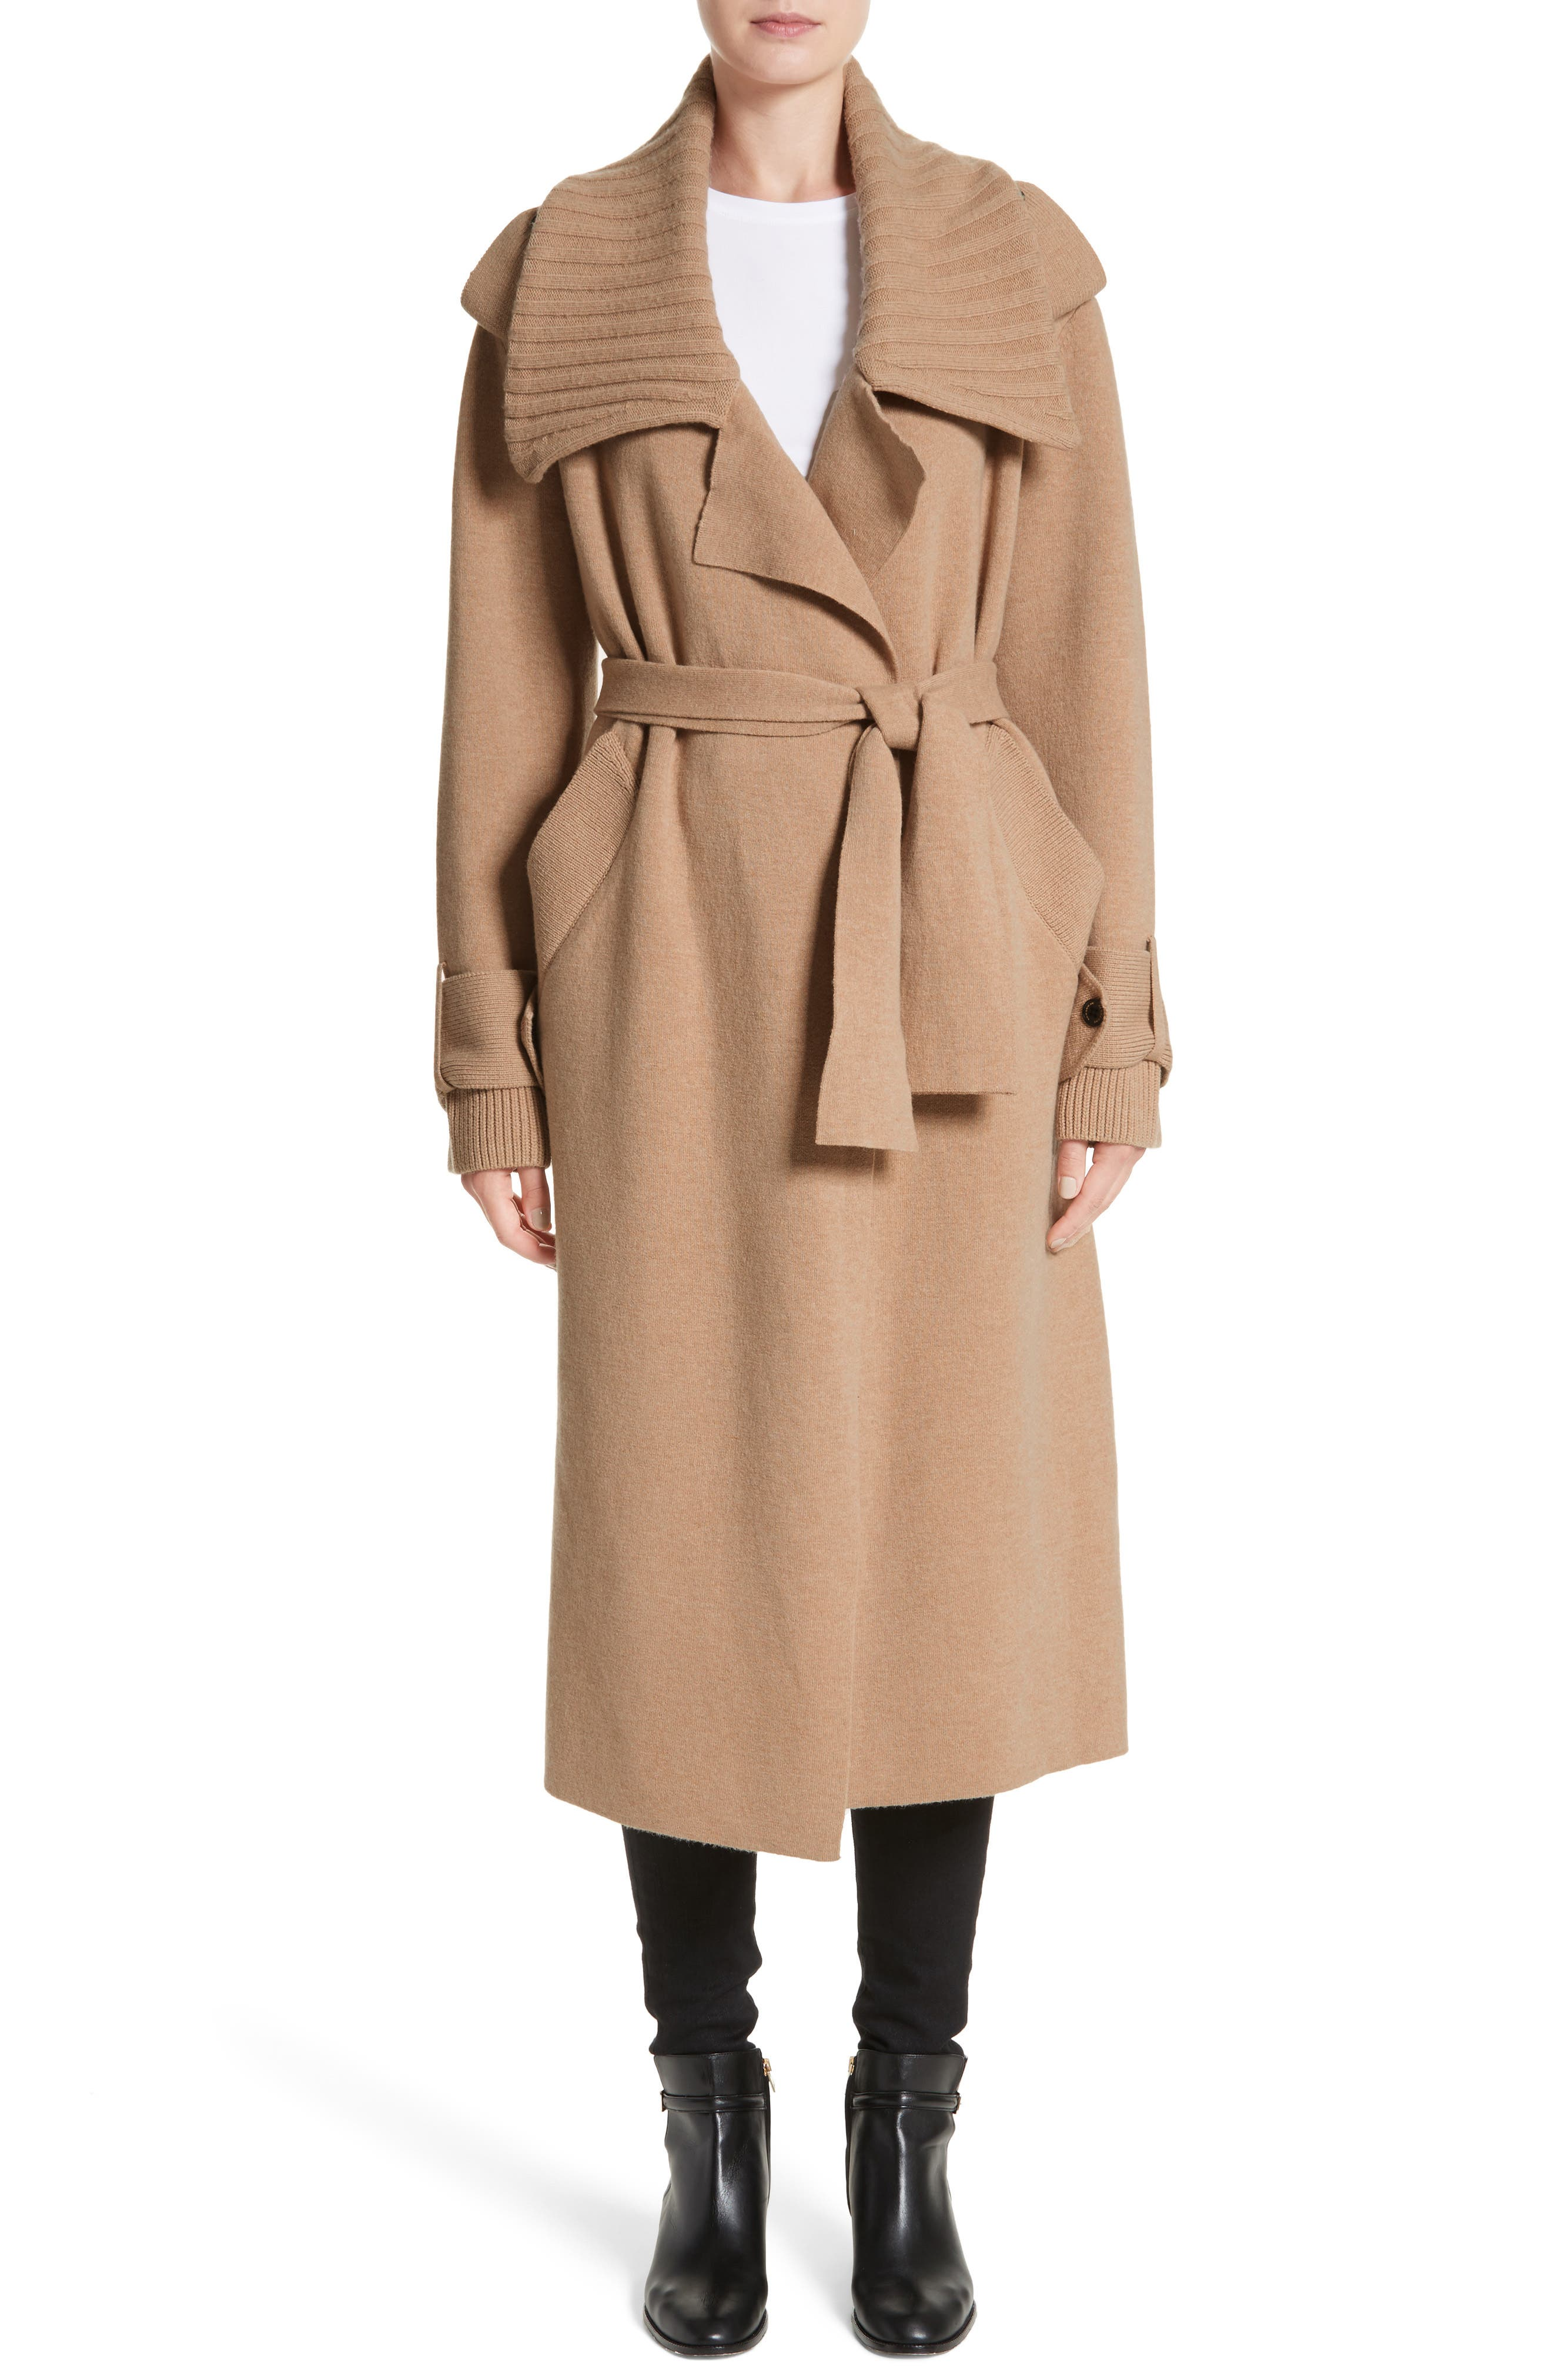 Piota Wool Blend Knit Trench Coat,                         Main,                         color, 231